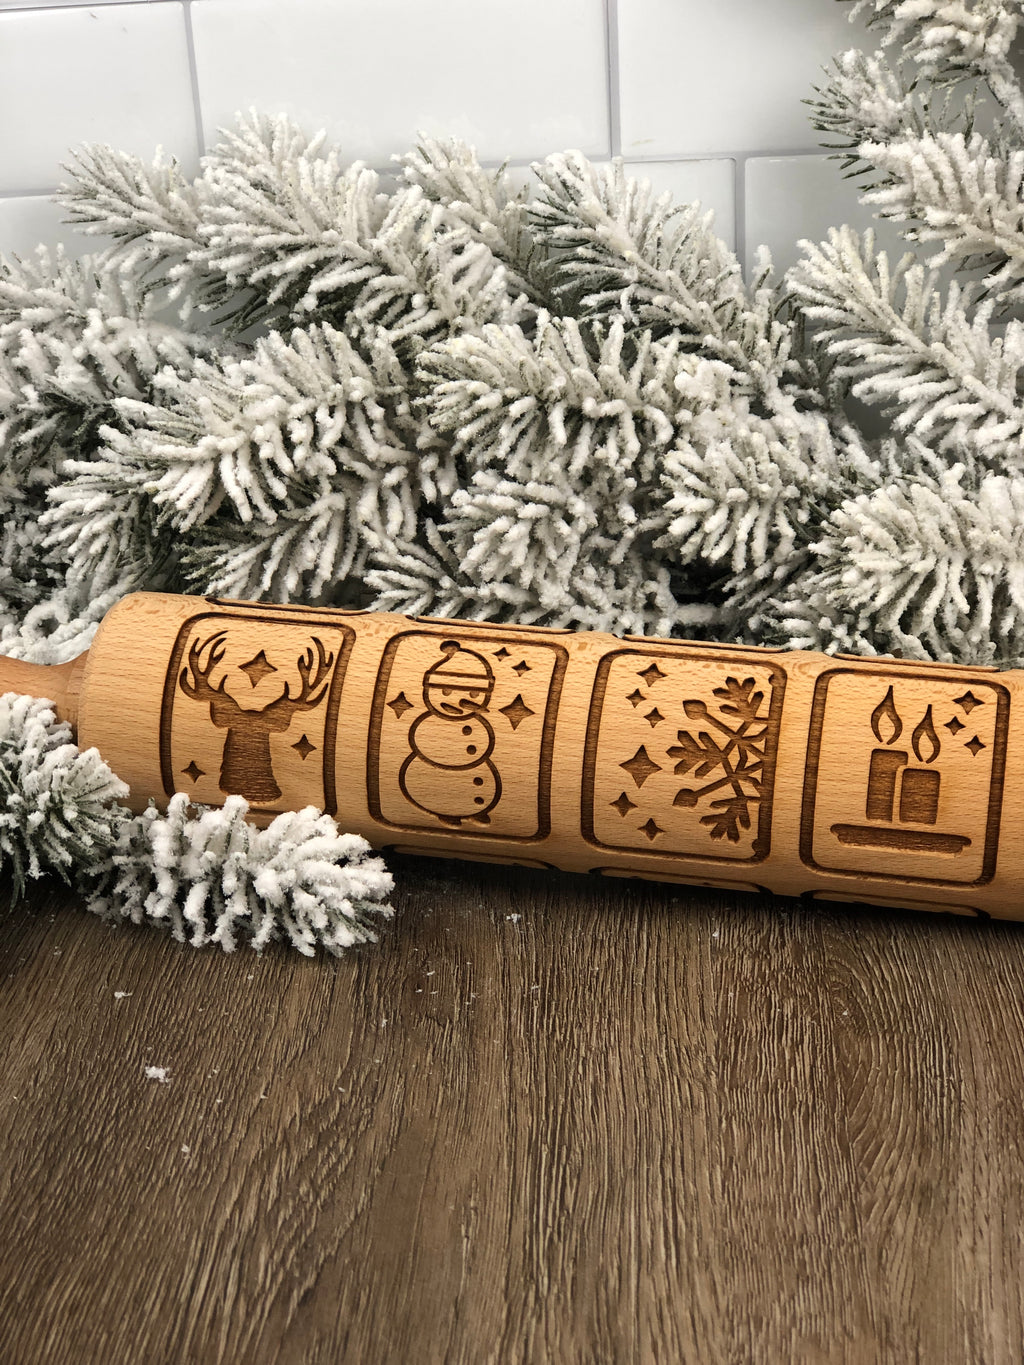 Large Wooden Rolling Pin - Christmas Squares